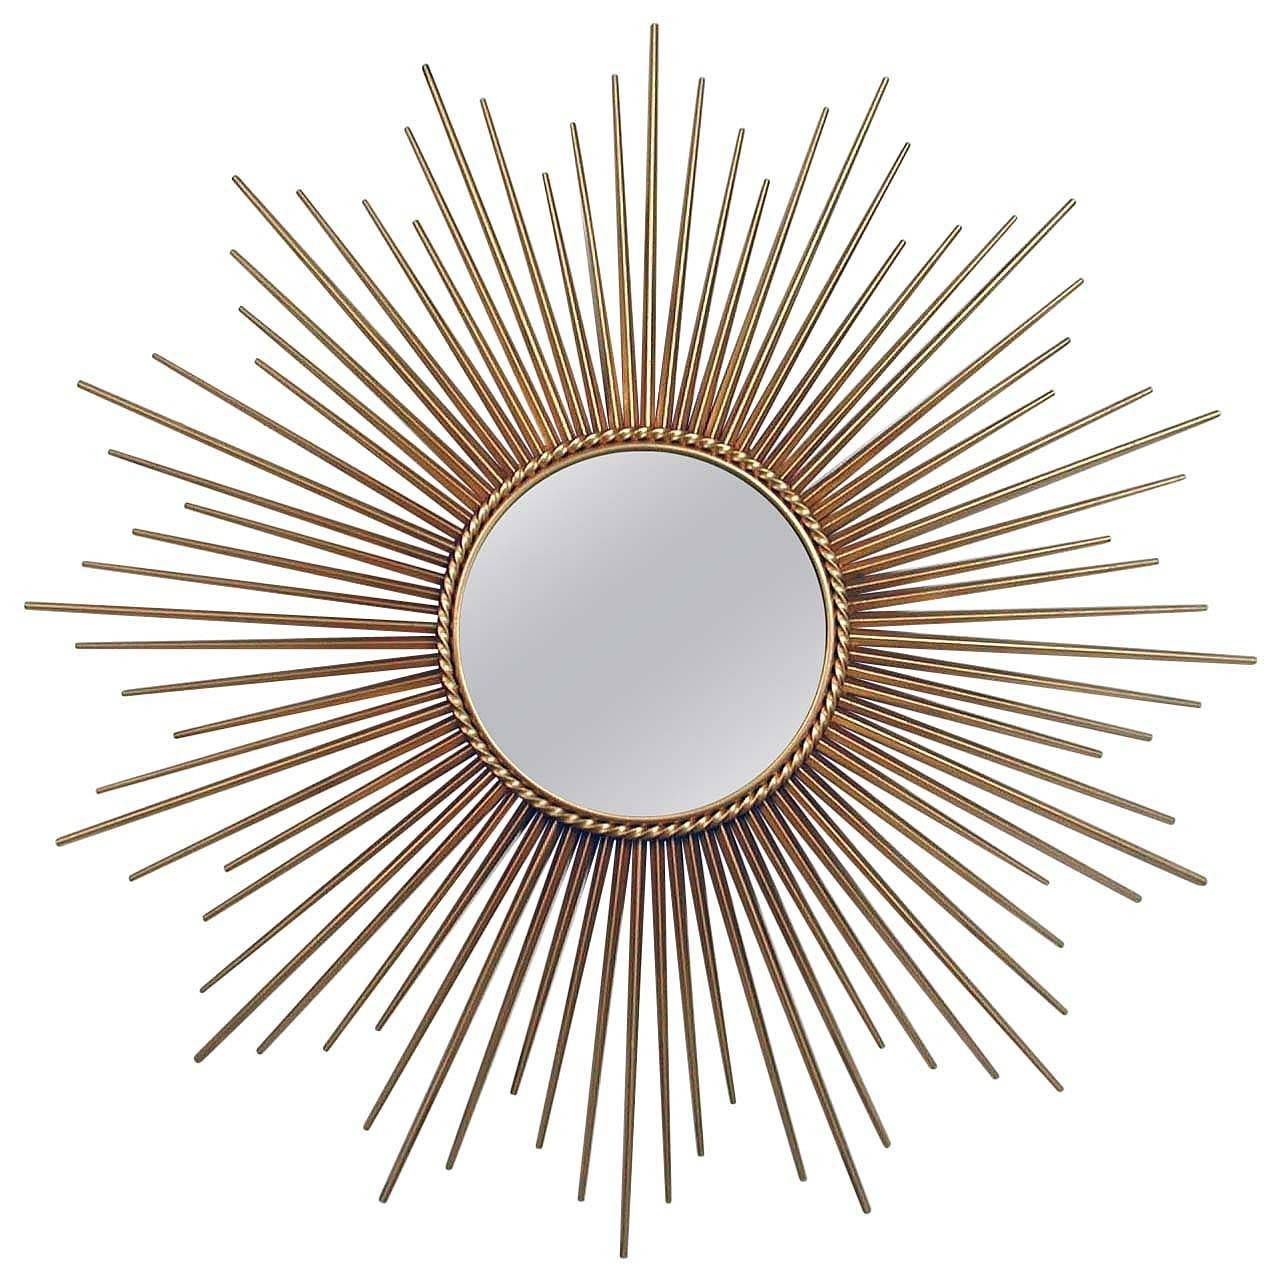 Sunburst Wall Mirror large french chaty vallauris gilt sunburst starburst wall mirror